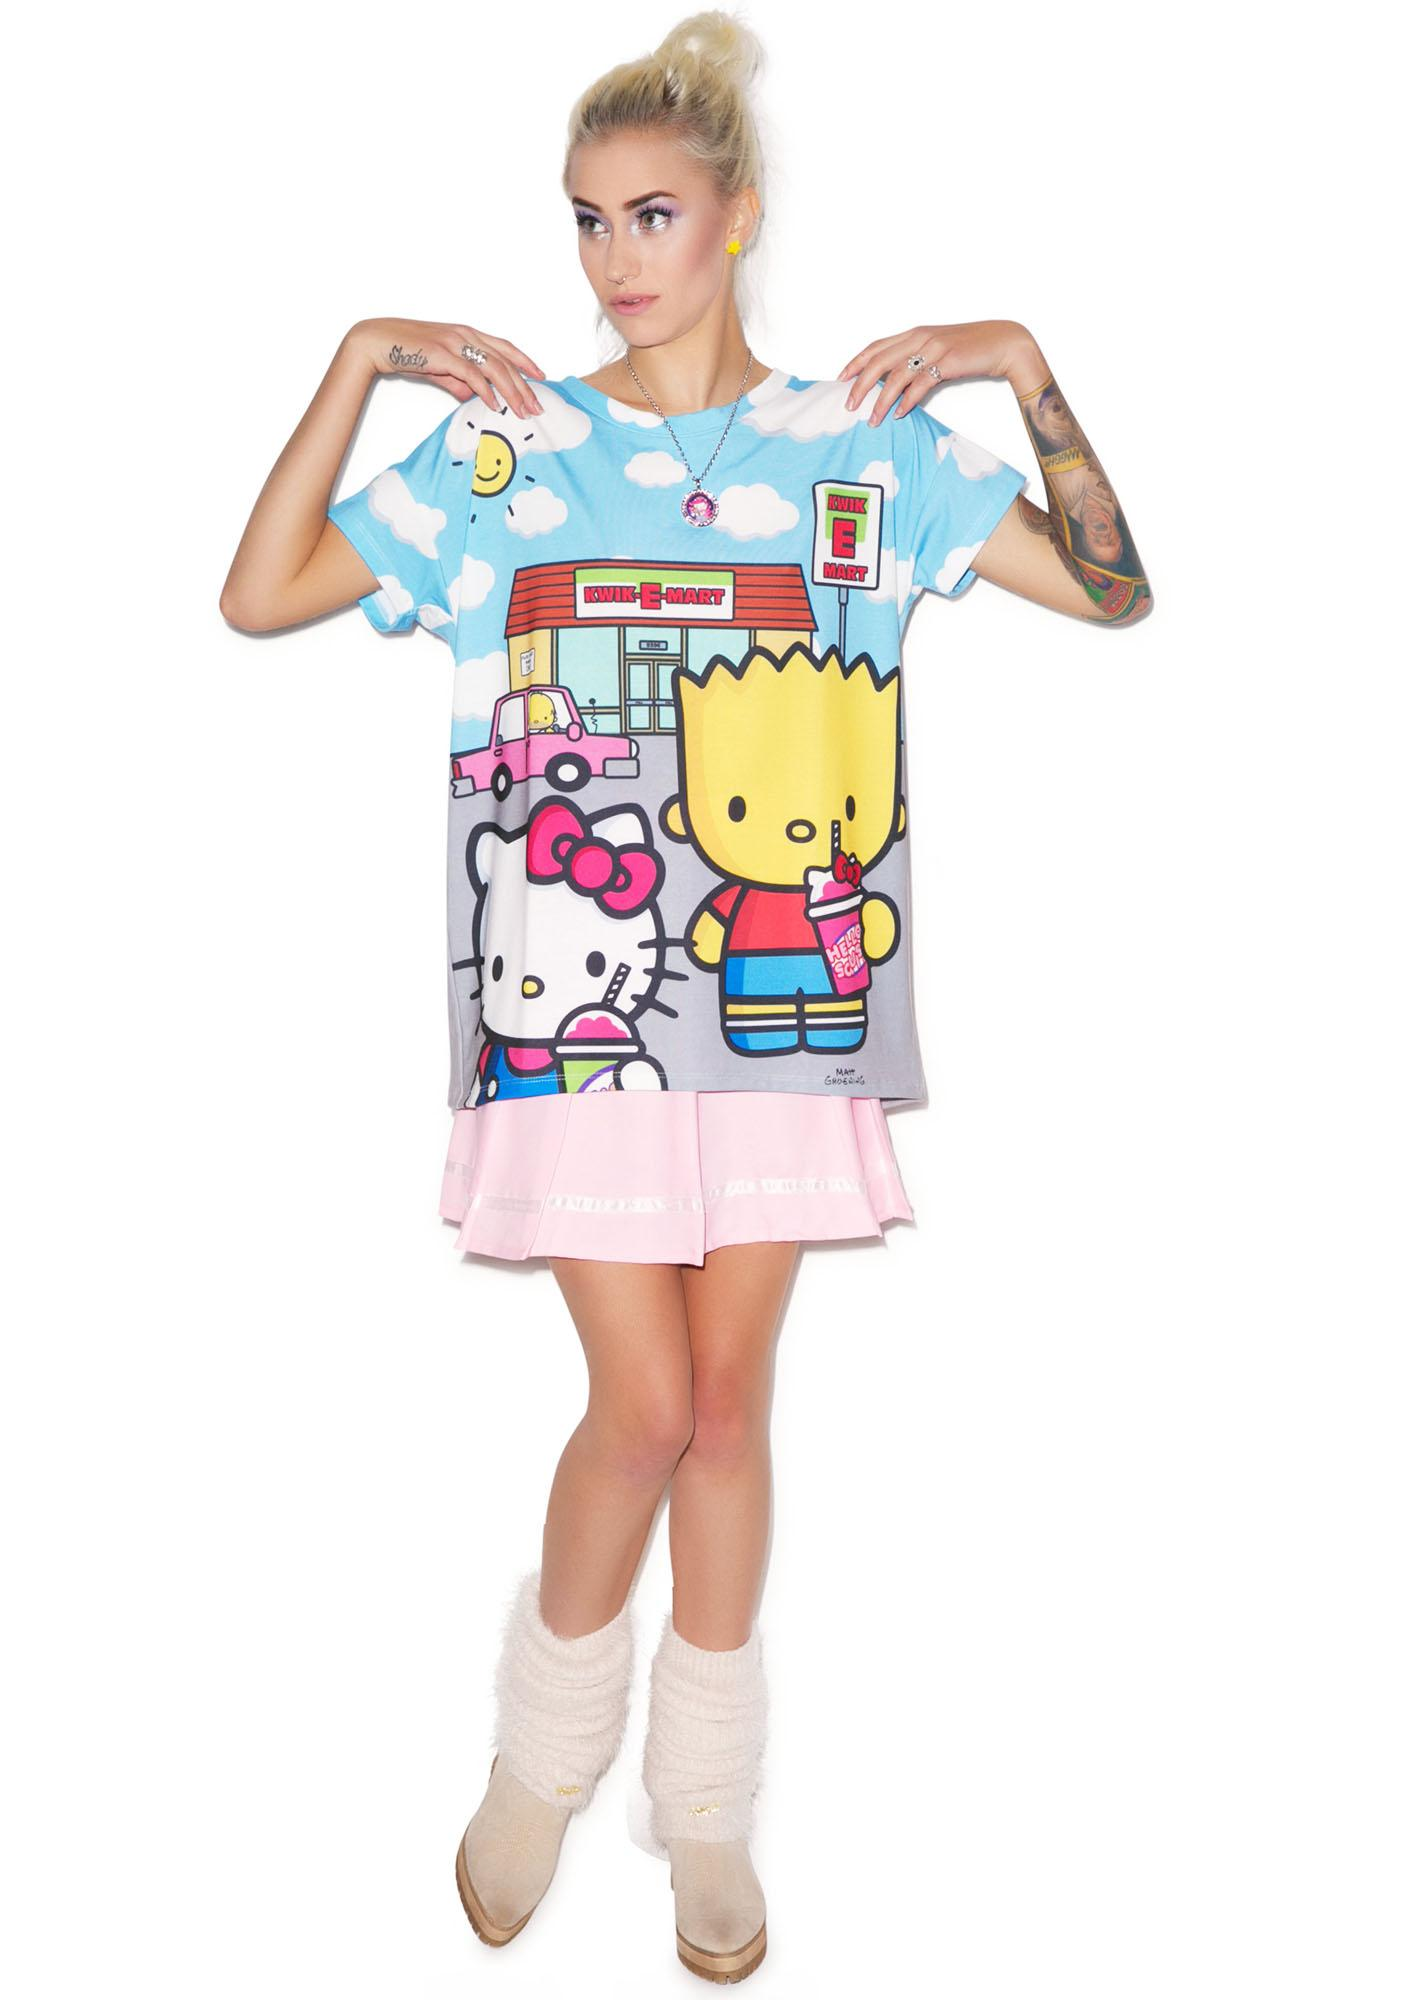 Japan L.A. Kwik E Mart Tunic Top